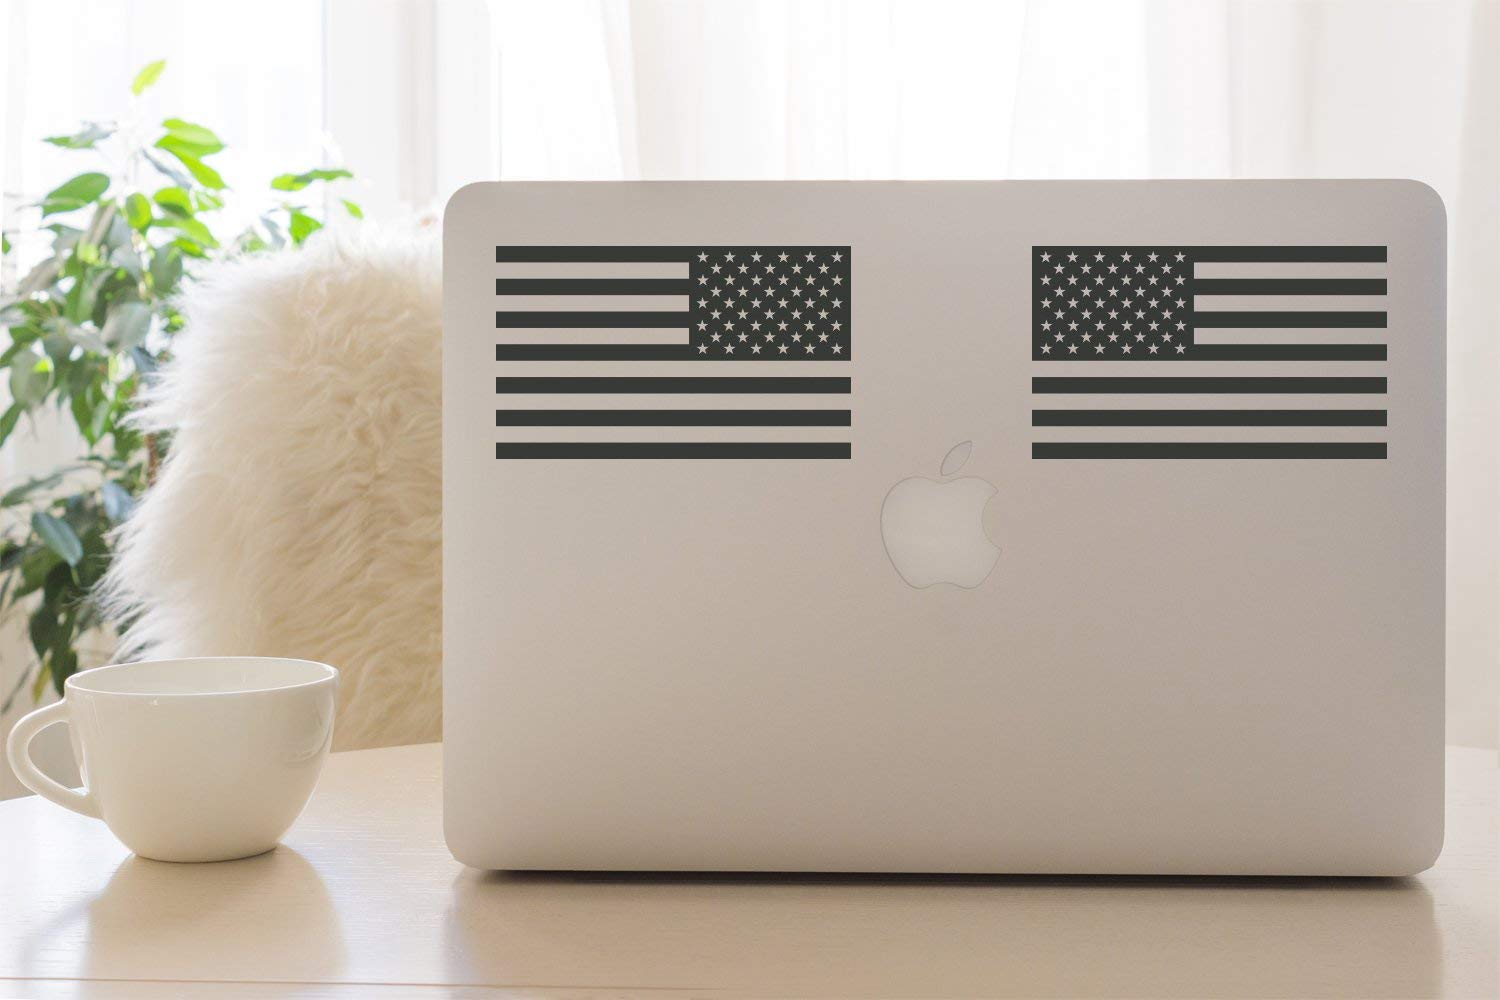 Matte Dark Grey Classic Biker Gear Subdued American Flags Tactical Military Flag USA Decal Jeep 5x3